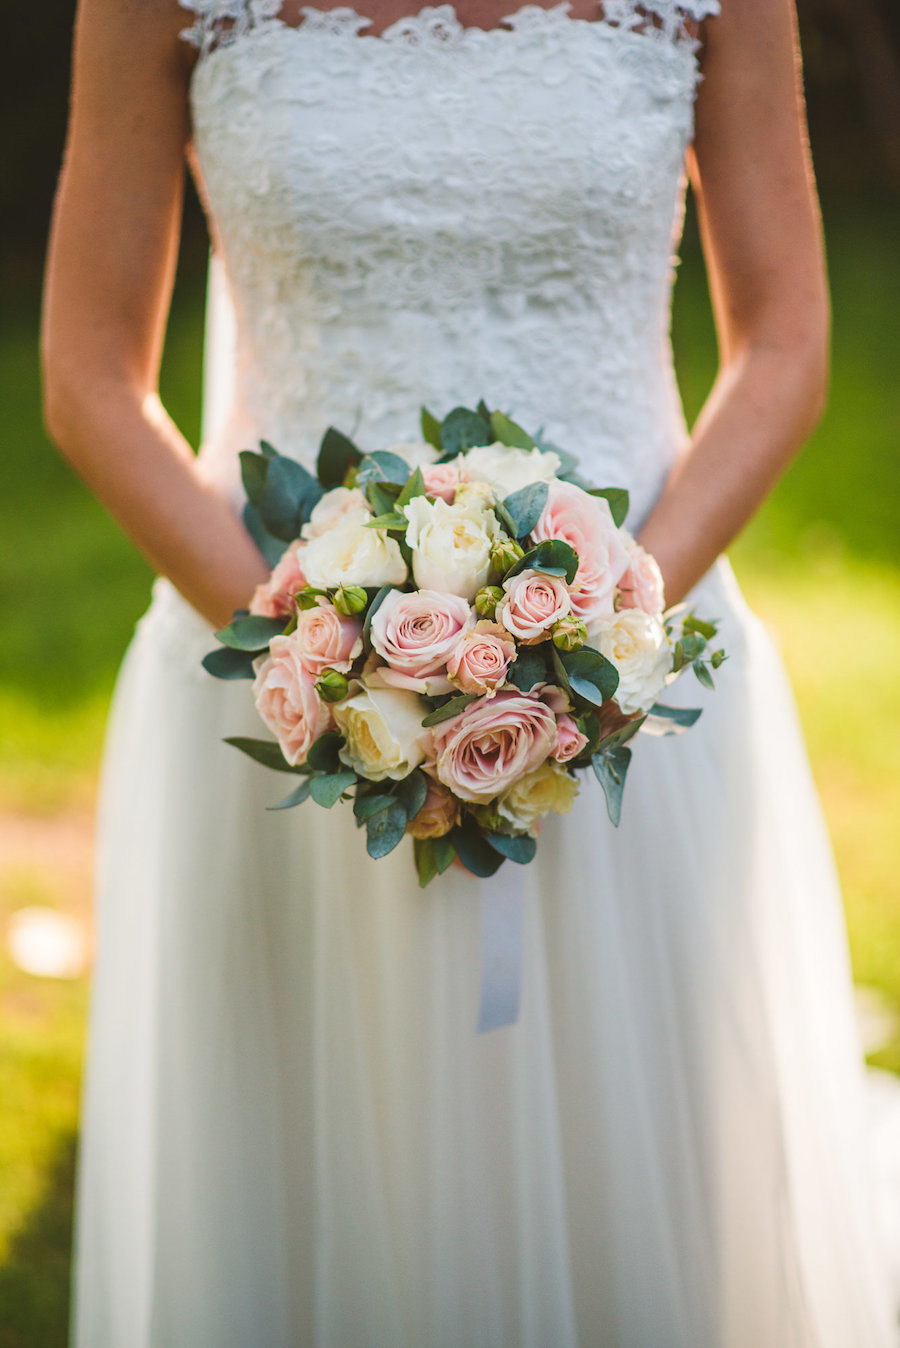 bouquet con rose e foliage